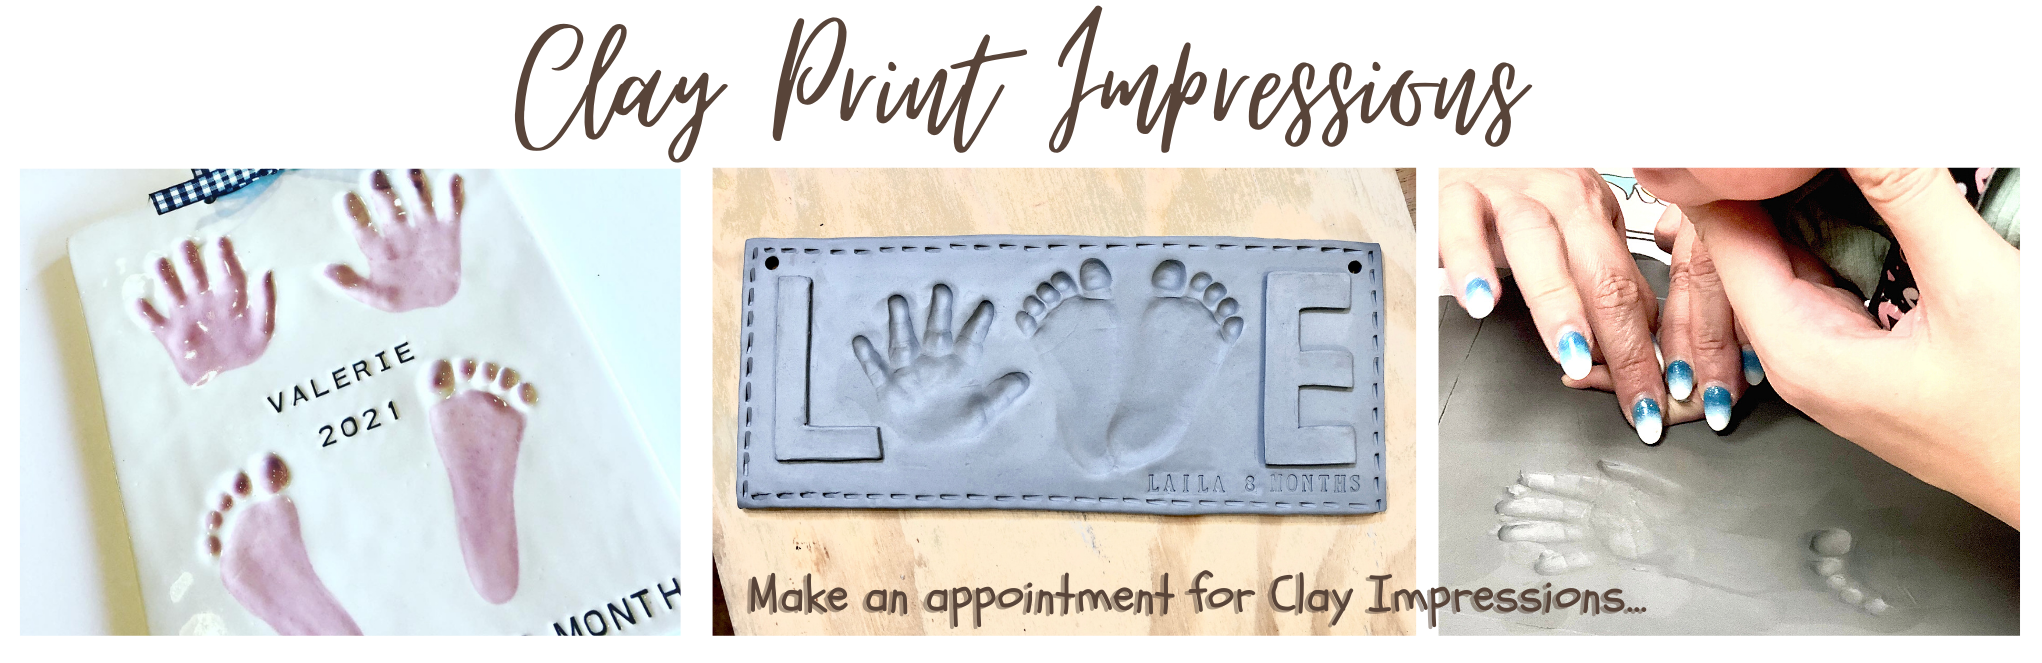 Clay prints banner